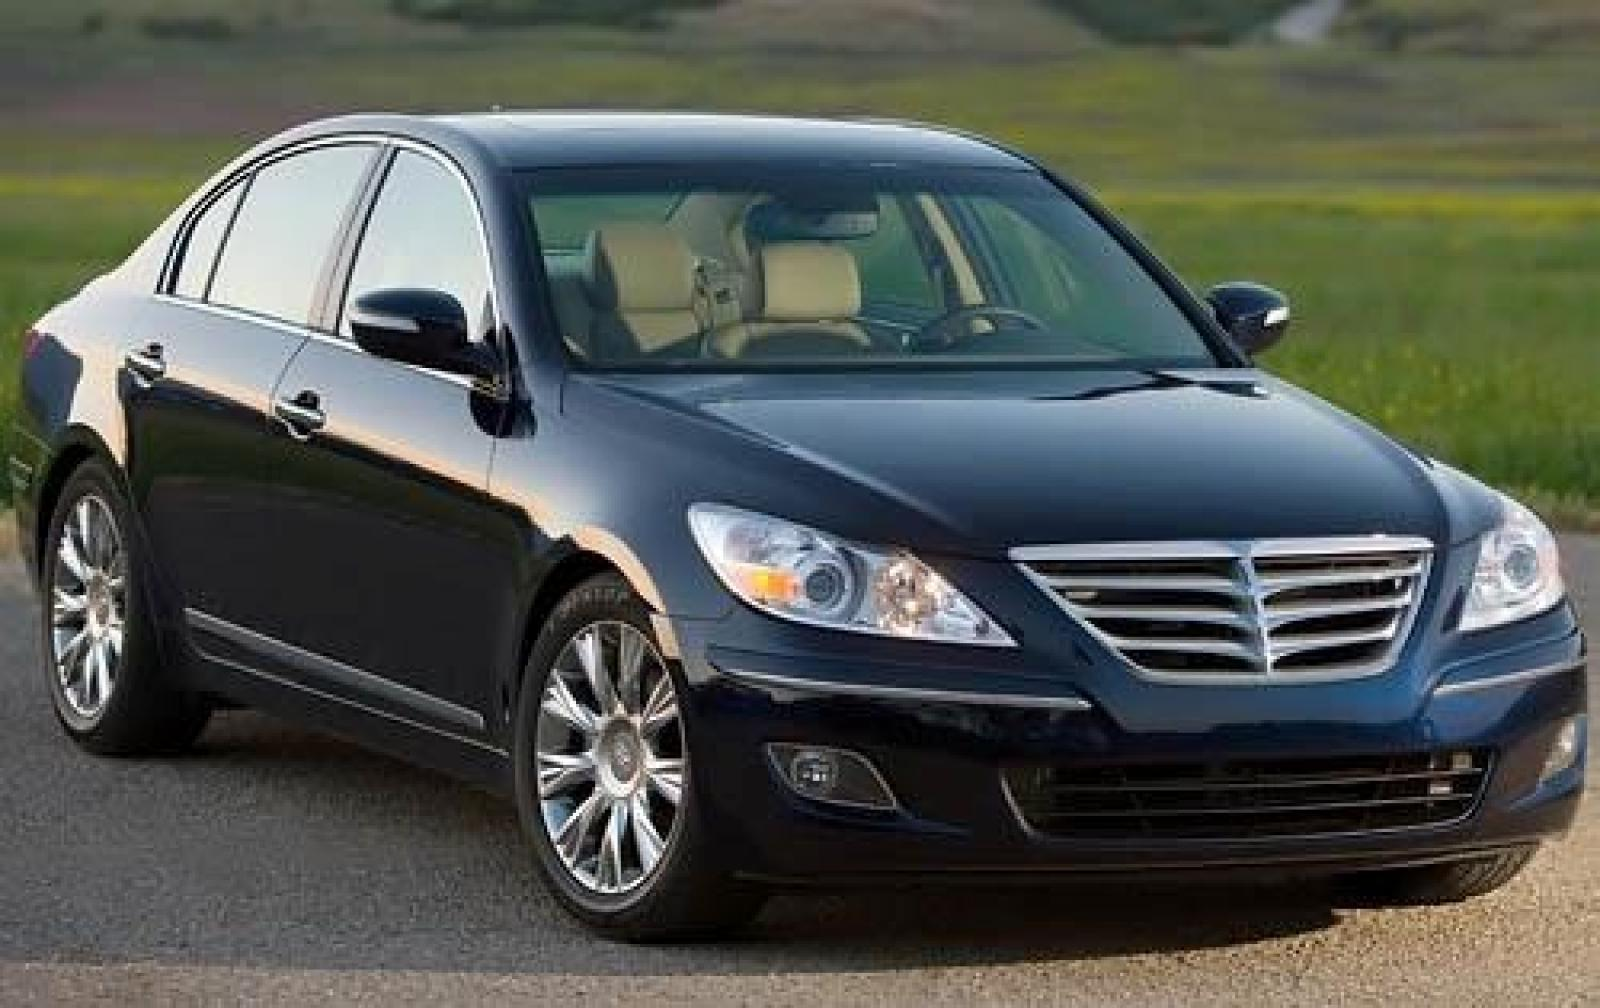 hight resolution of 2011 hyundai genesis 1 800 1024 1280 1600 origin